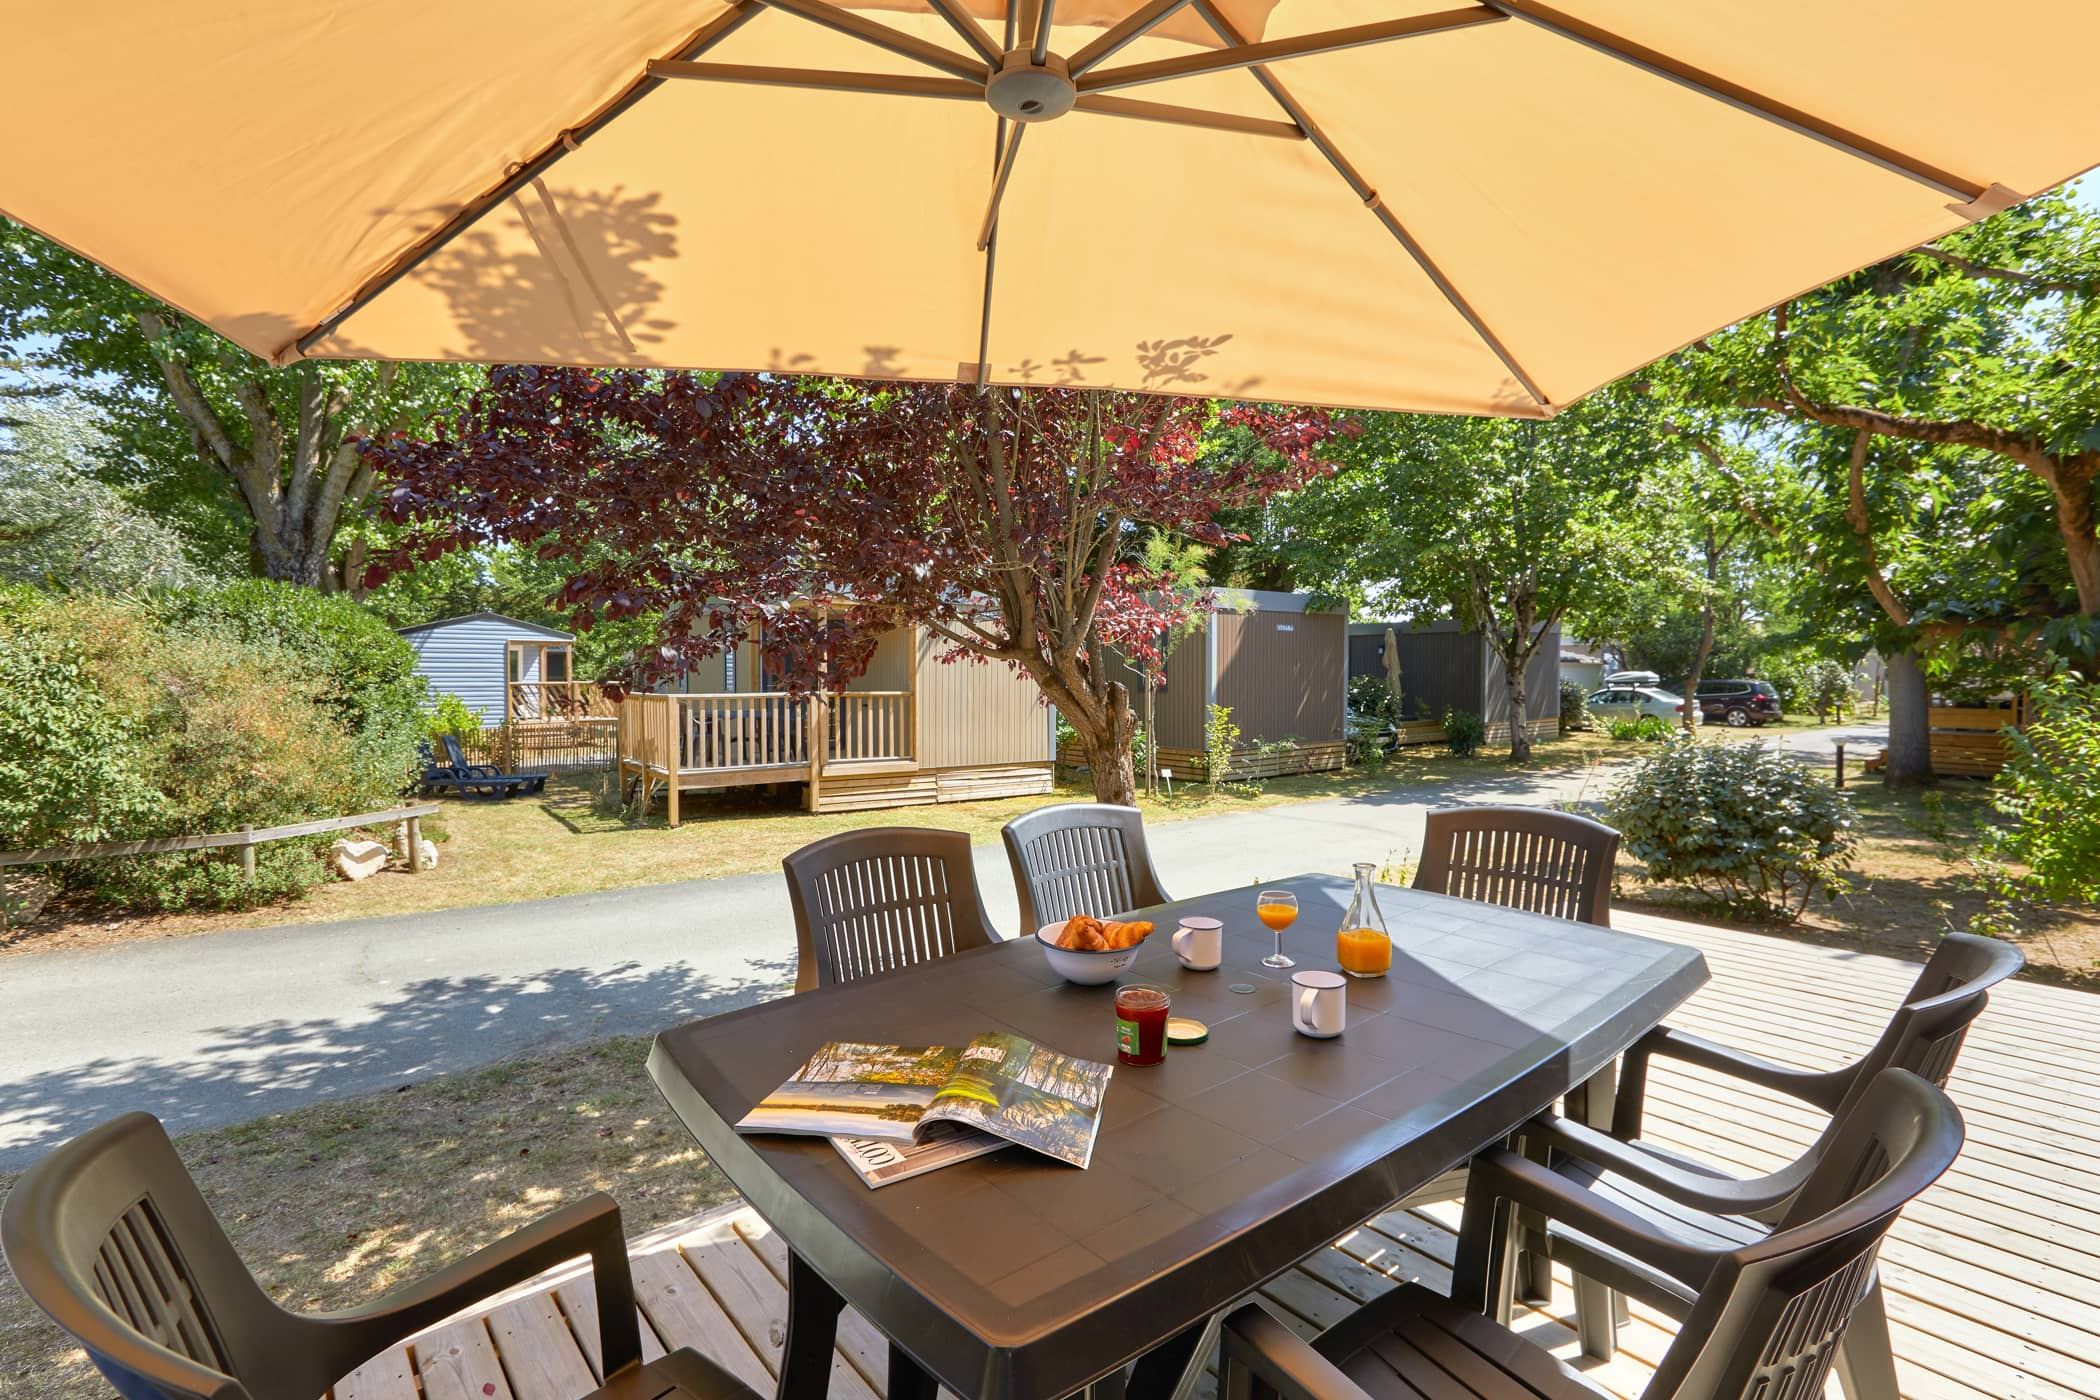 location mobil-home Terrasse 3 chambres